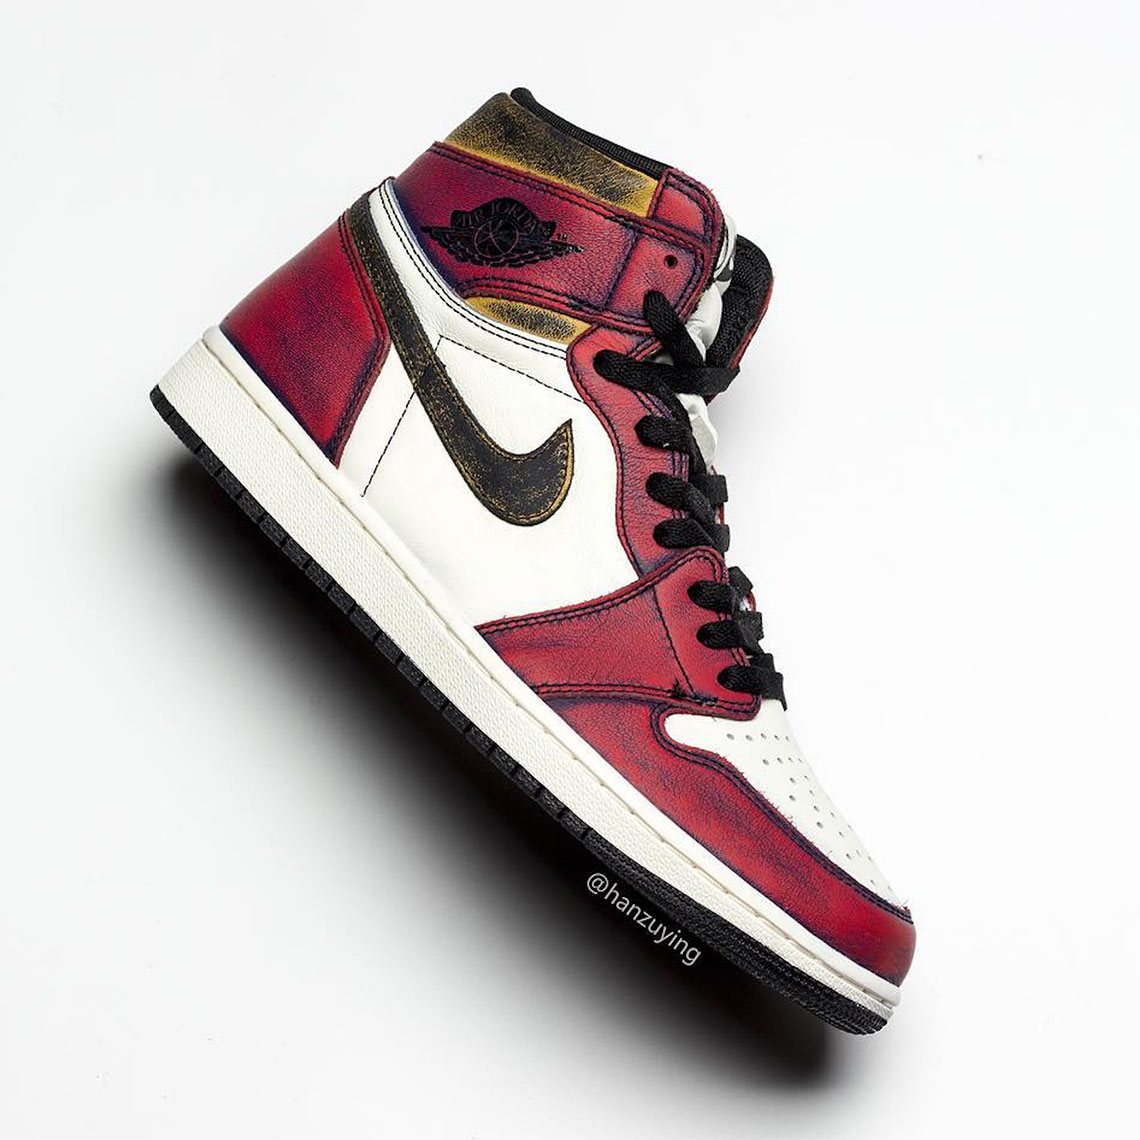 648a837e2f Air Jordan 1 SB Shoes - Lakers Bulls | SneakerNews.com